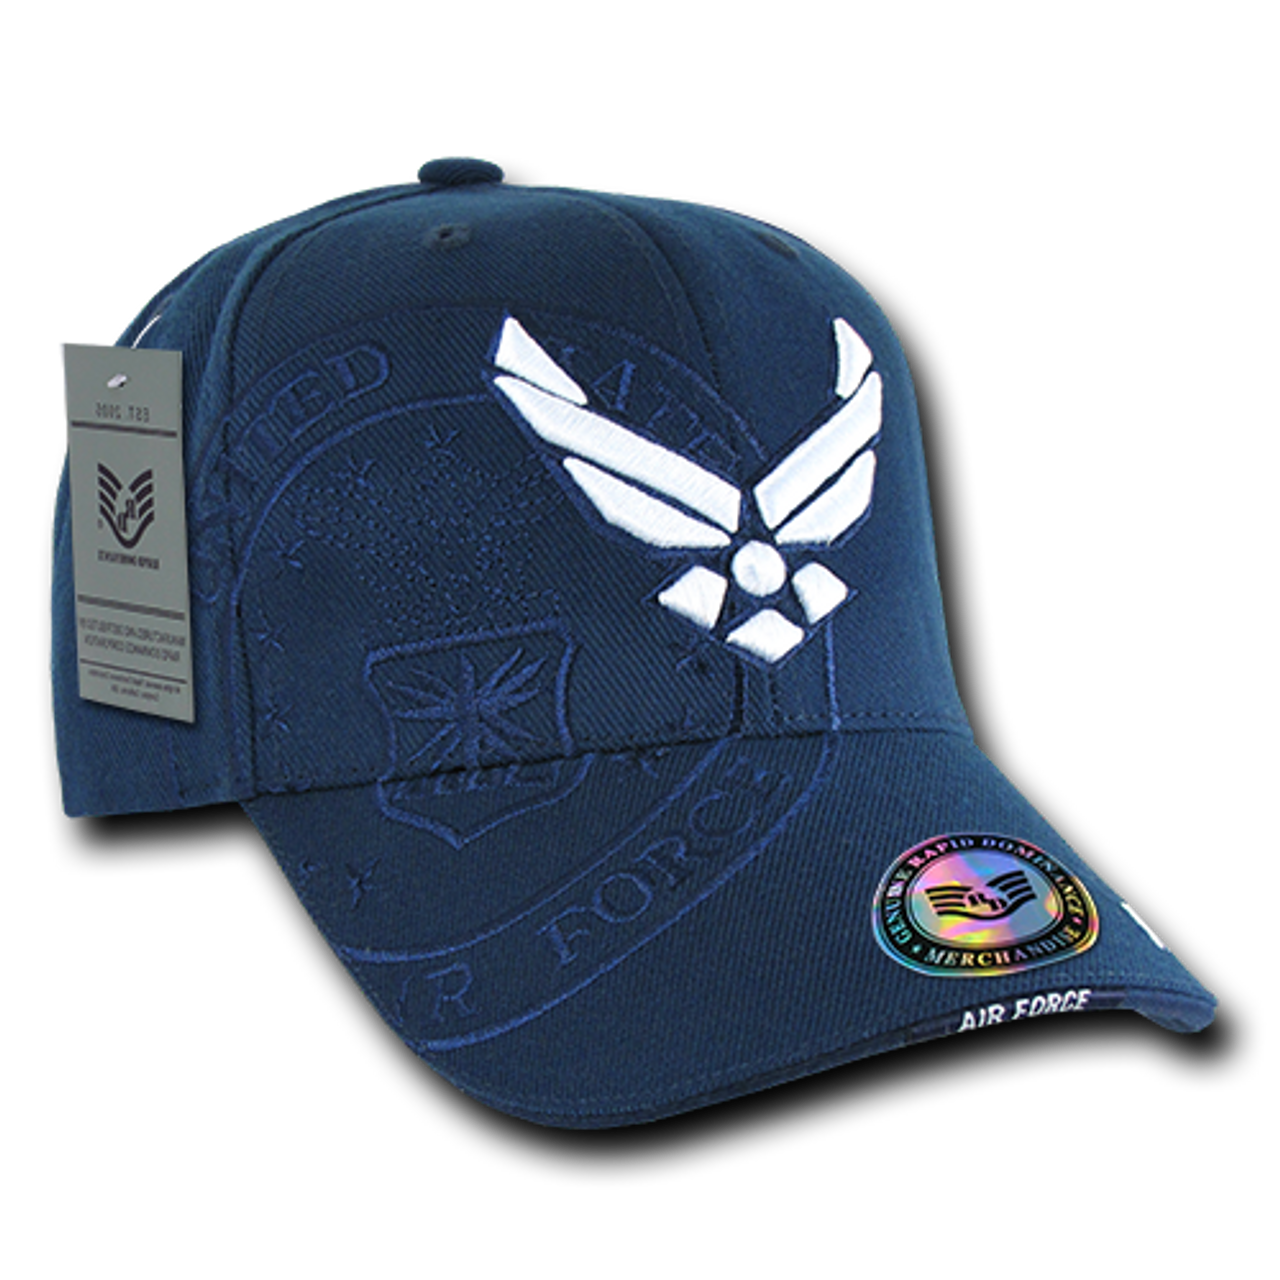 0ff72cda2a4 Air Force Shadow Cap With Air Force Wings Logo